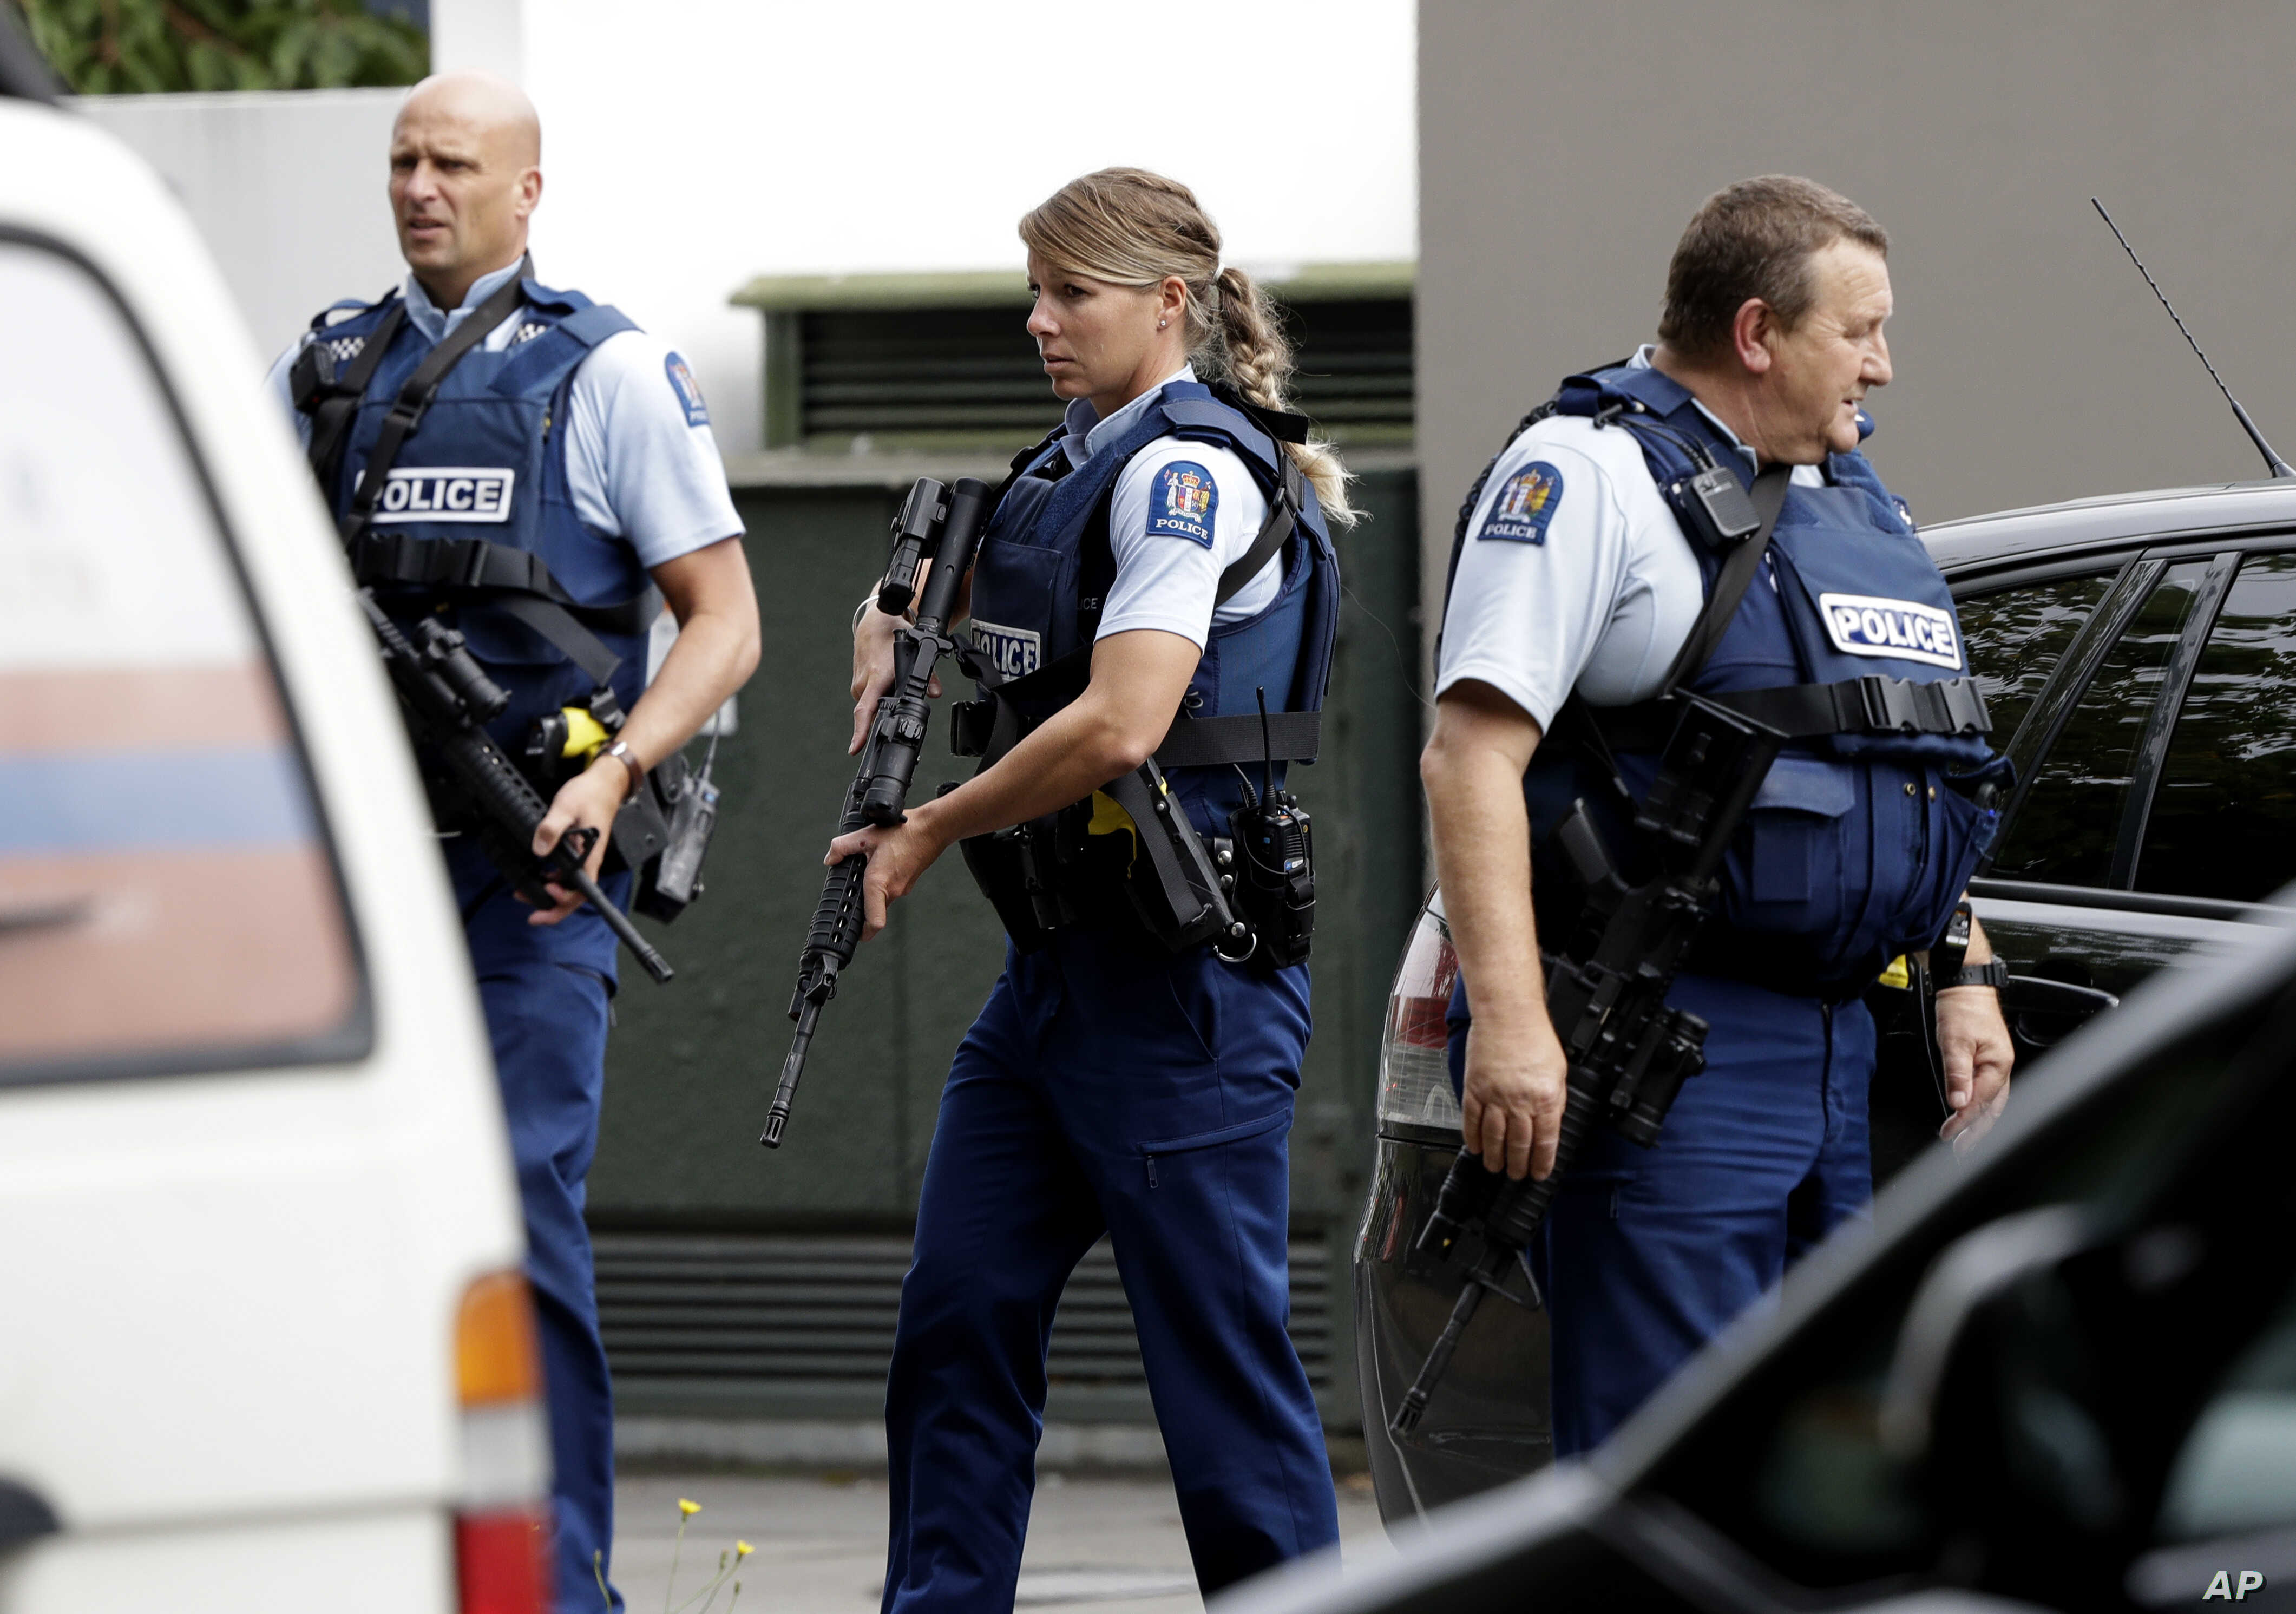 Armed police patrol outside a mosque in central Christchurch, New Zealand, March 15, 2019. A witness says many people have been killed in a mass shooting at a mosque in the New Zealand city of Christchurch.